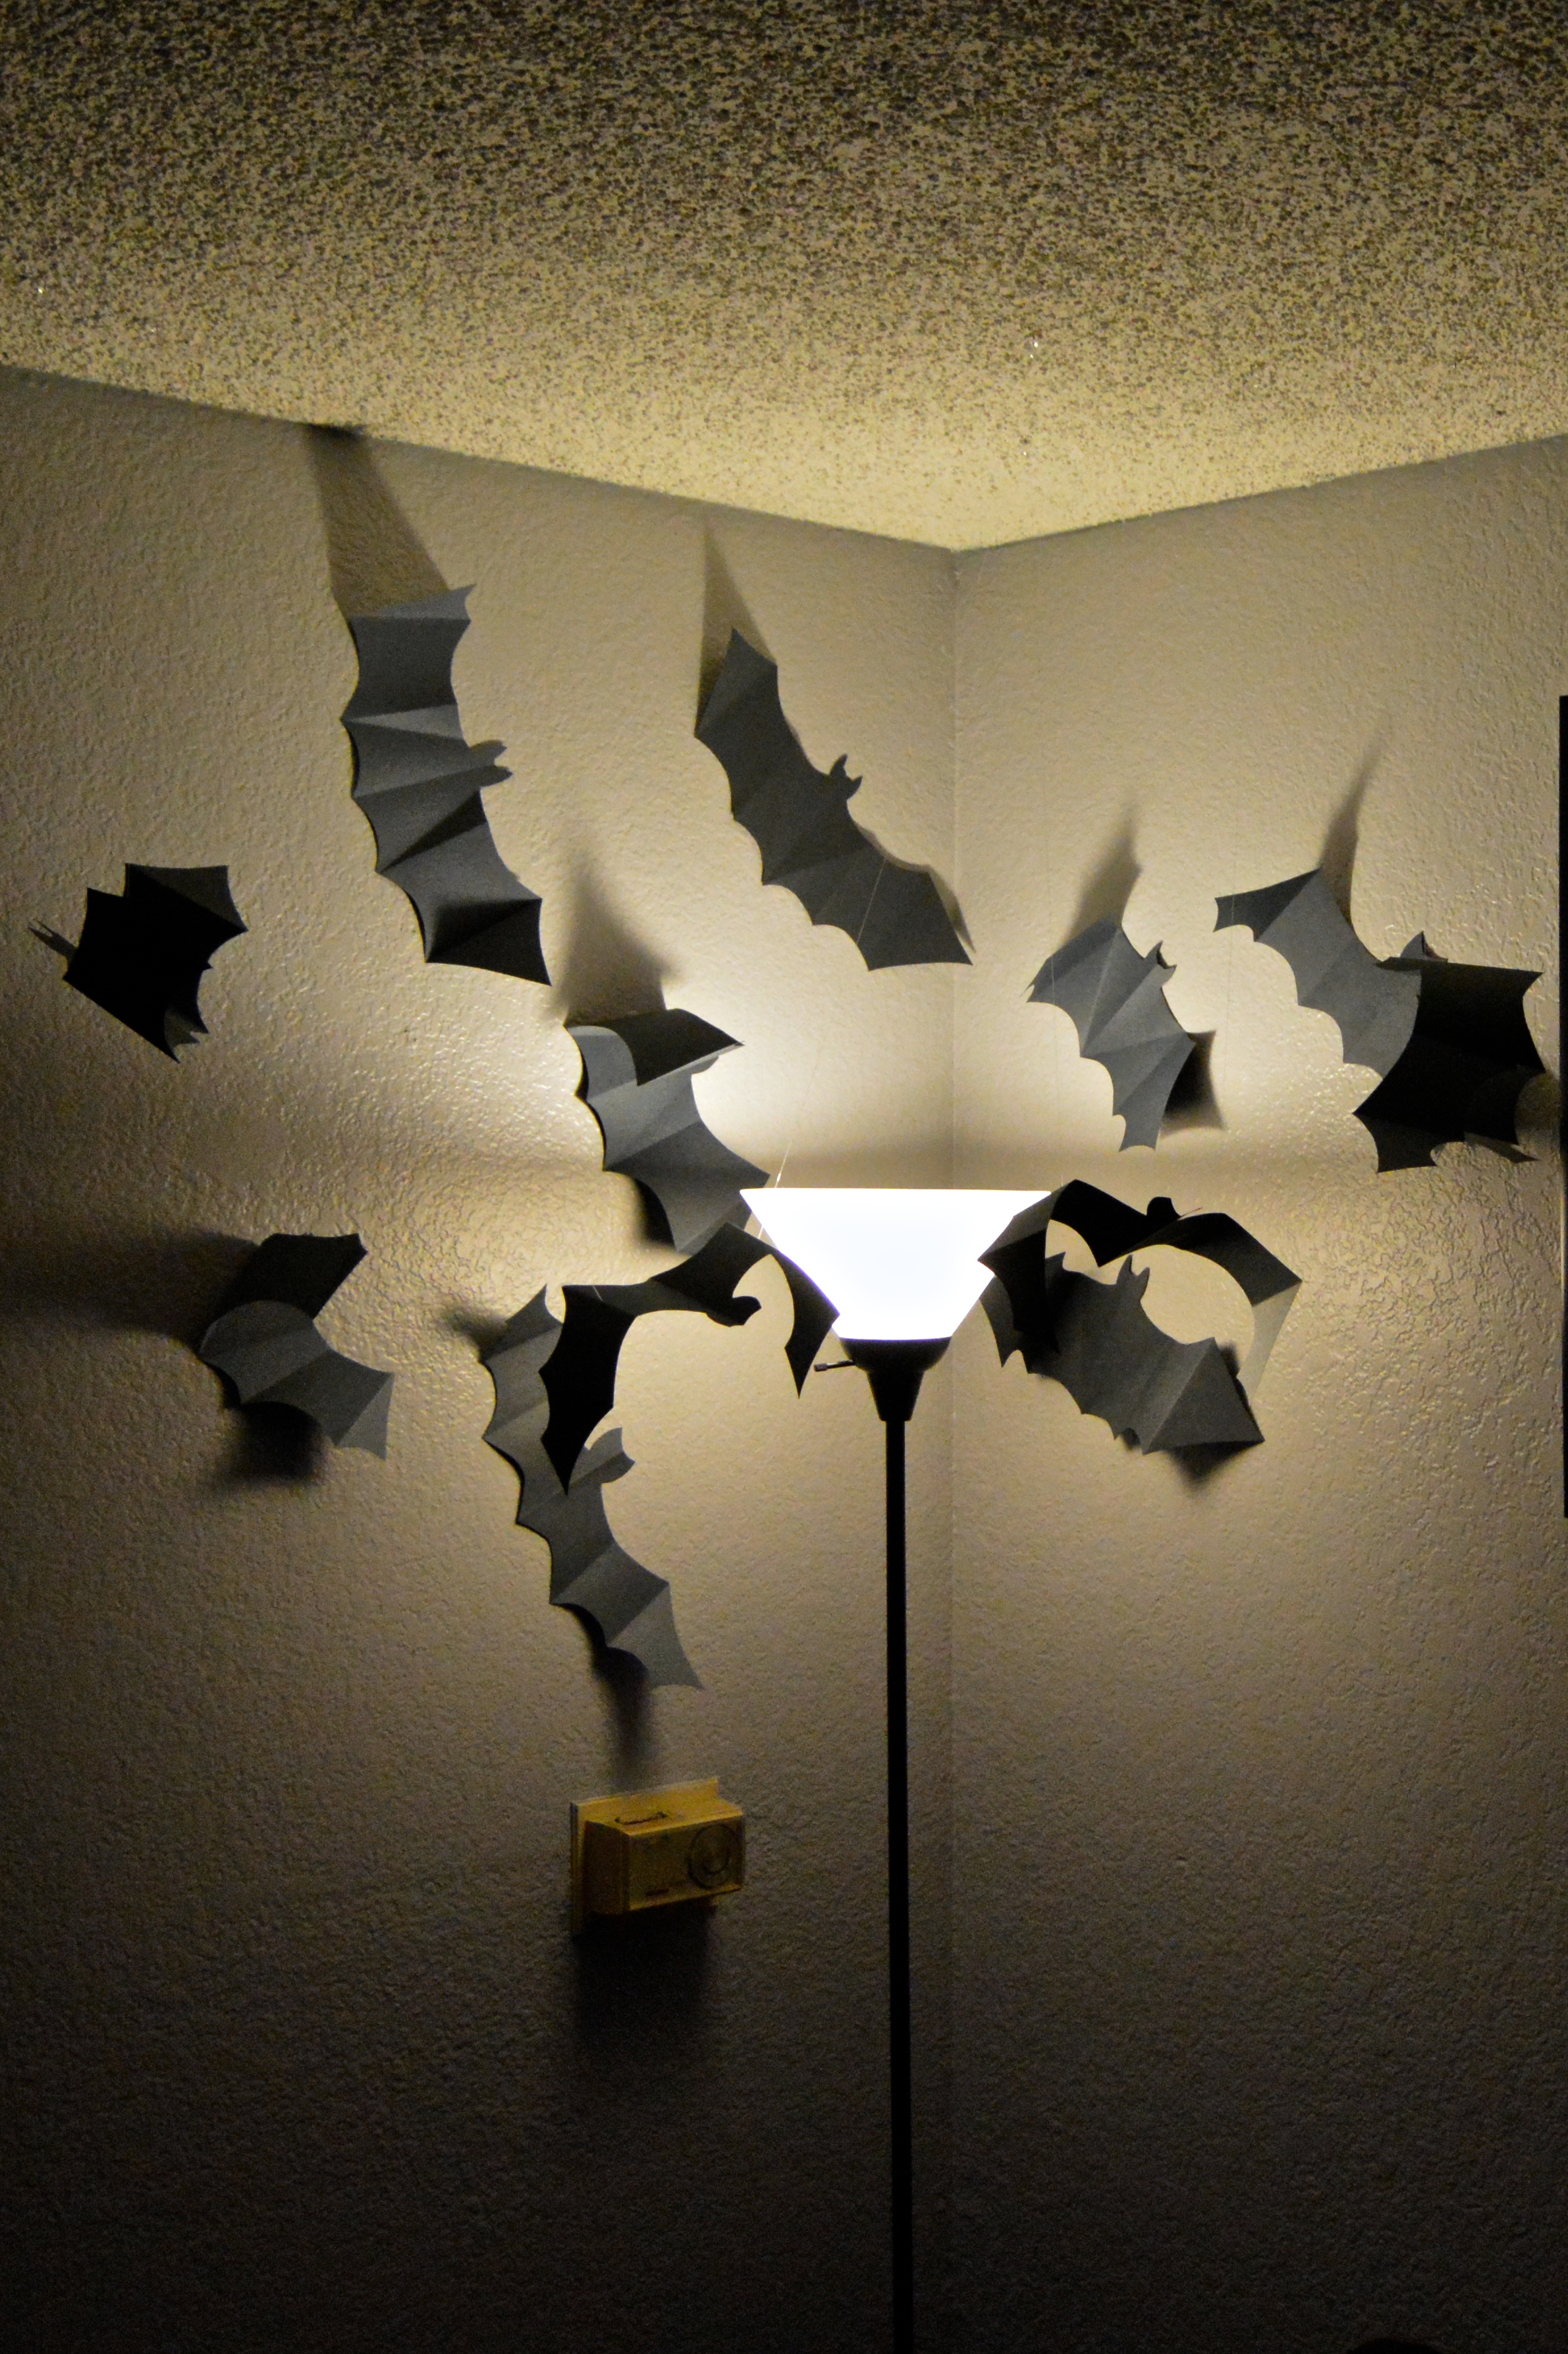 behind on halloween decorations this year so this weekend i upped my game to get ready for our halloween party this friday first up i made this paper